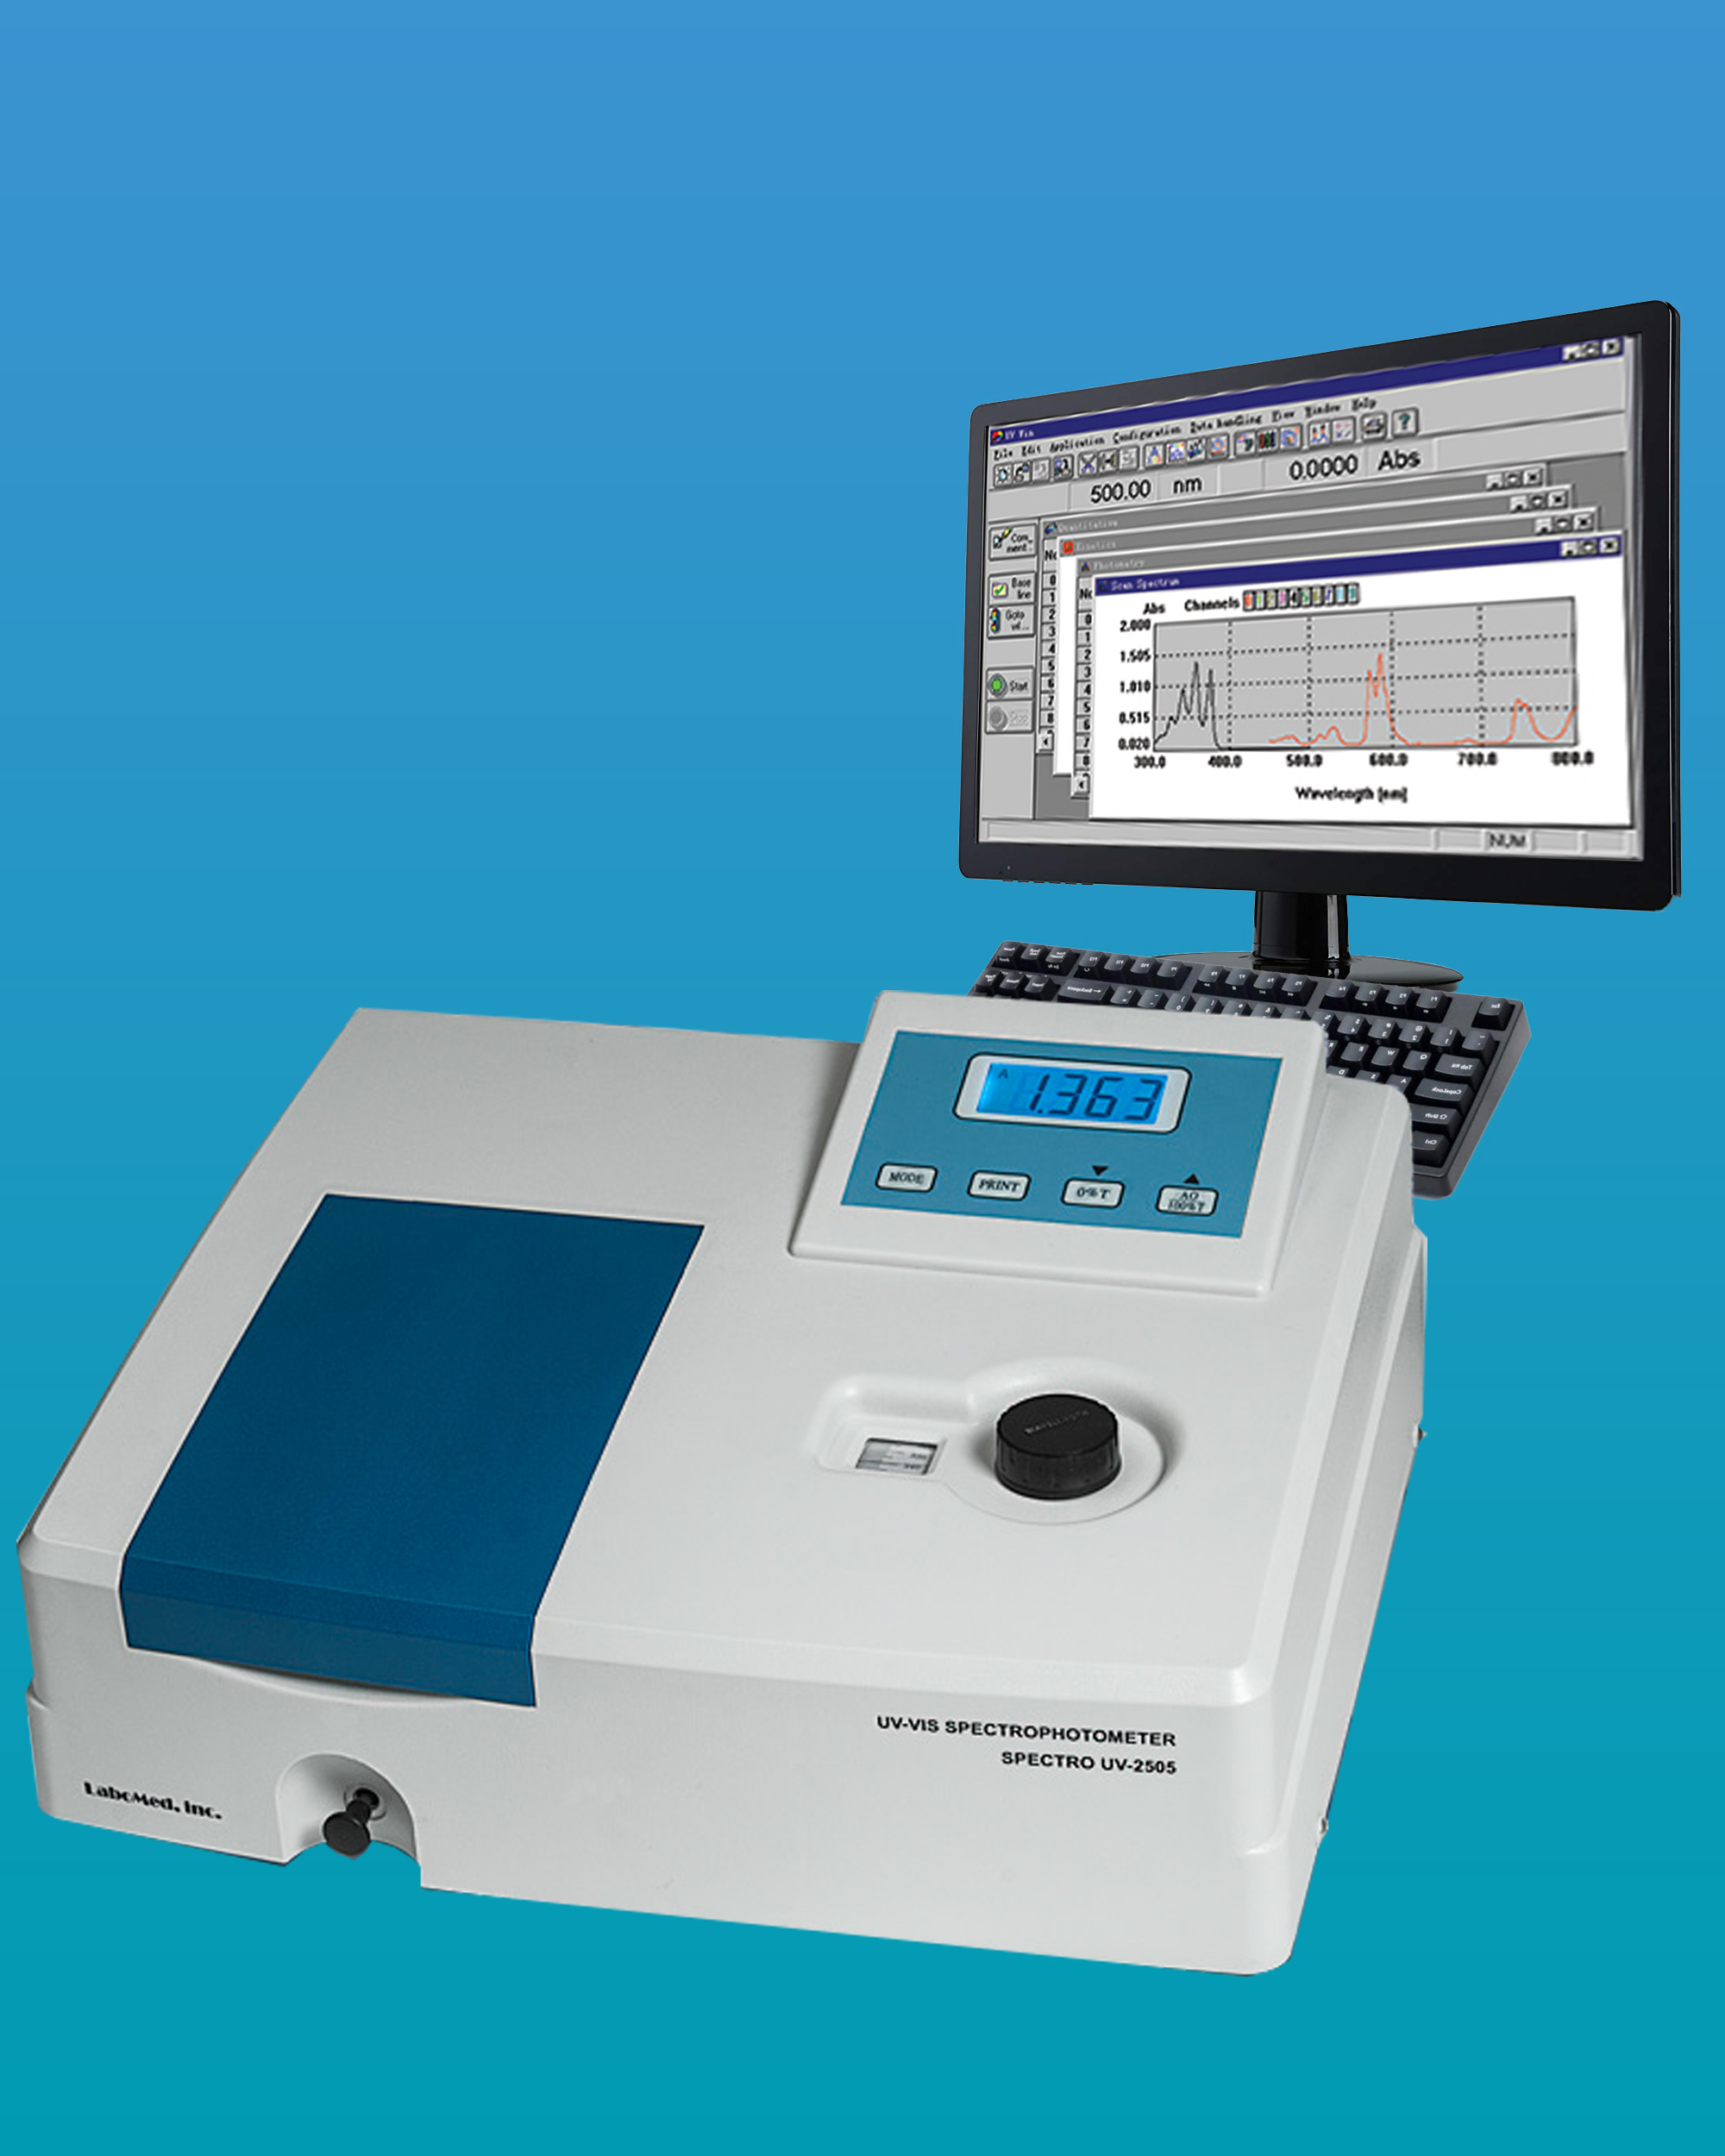 [UV-2505] UV-VIS Spectrophotometer w/ Multiple 4 Cell Holders